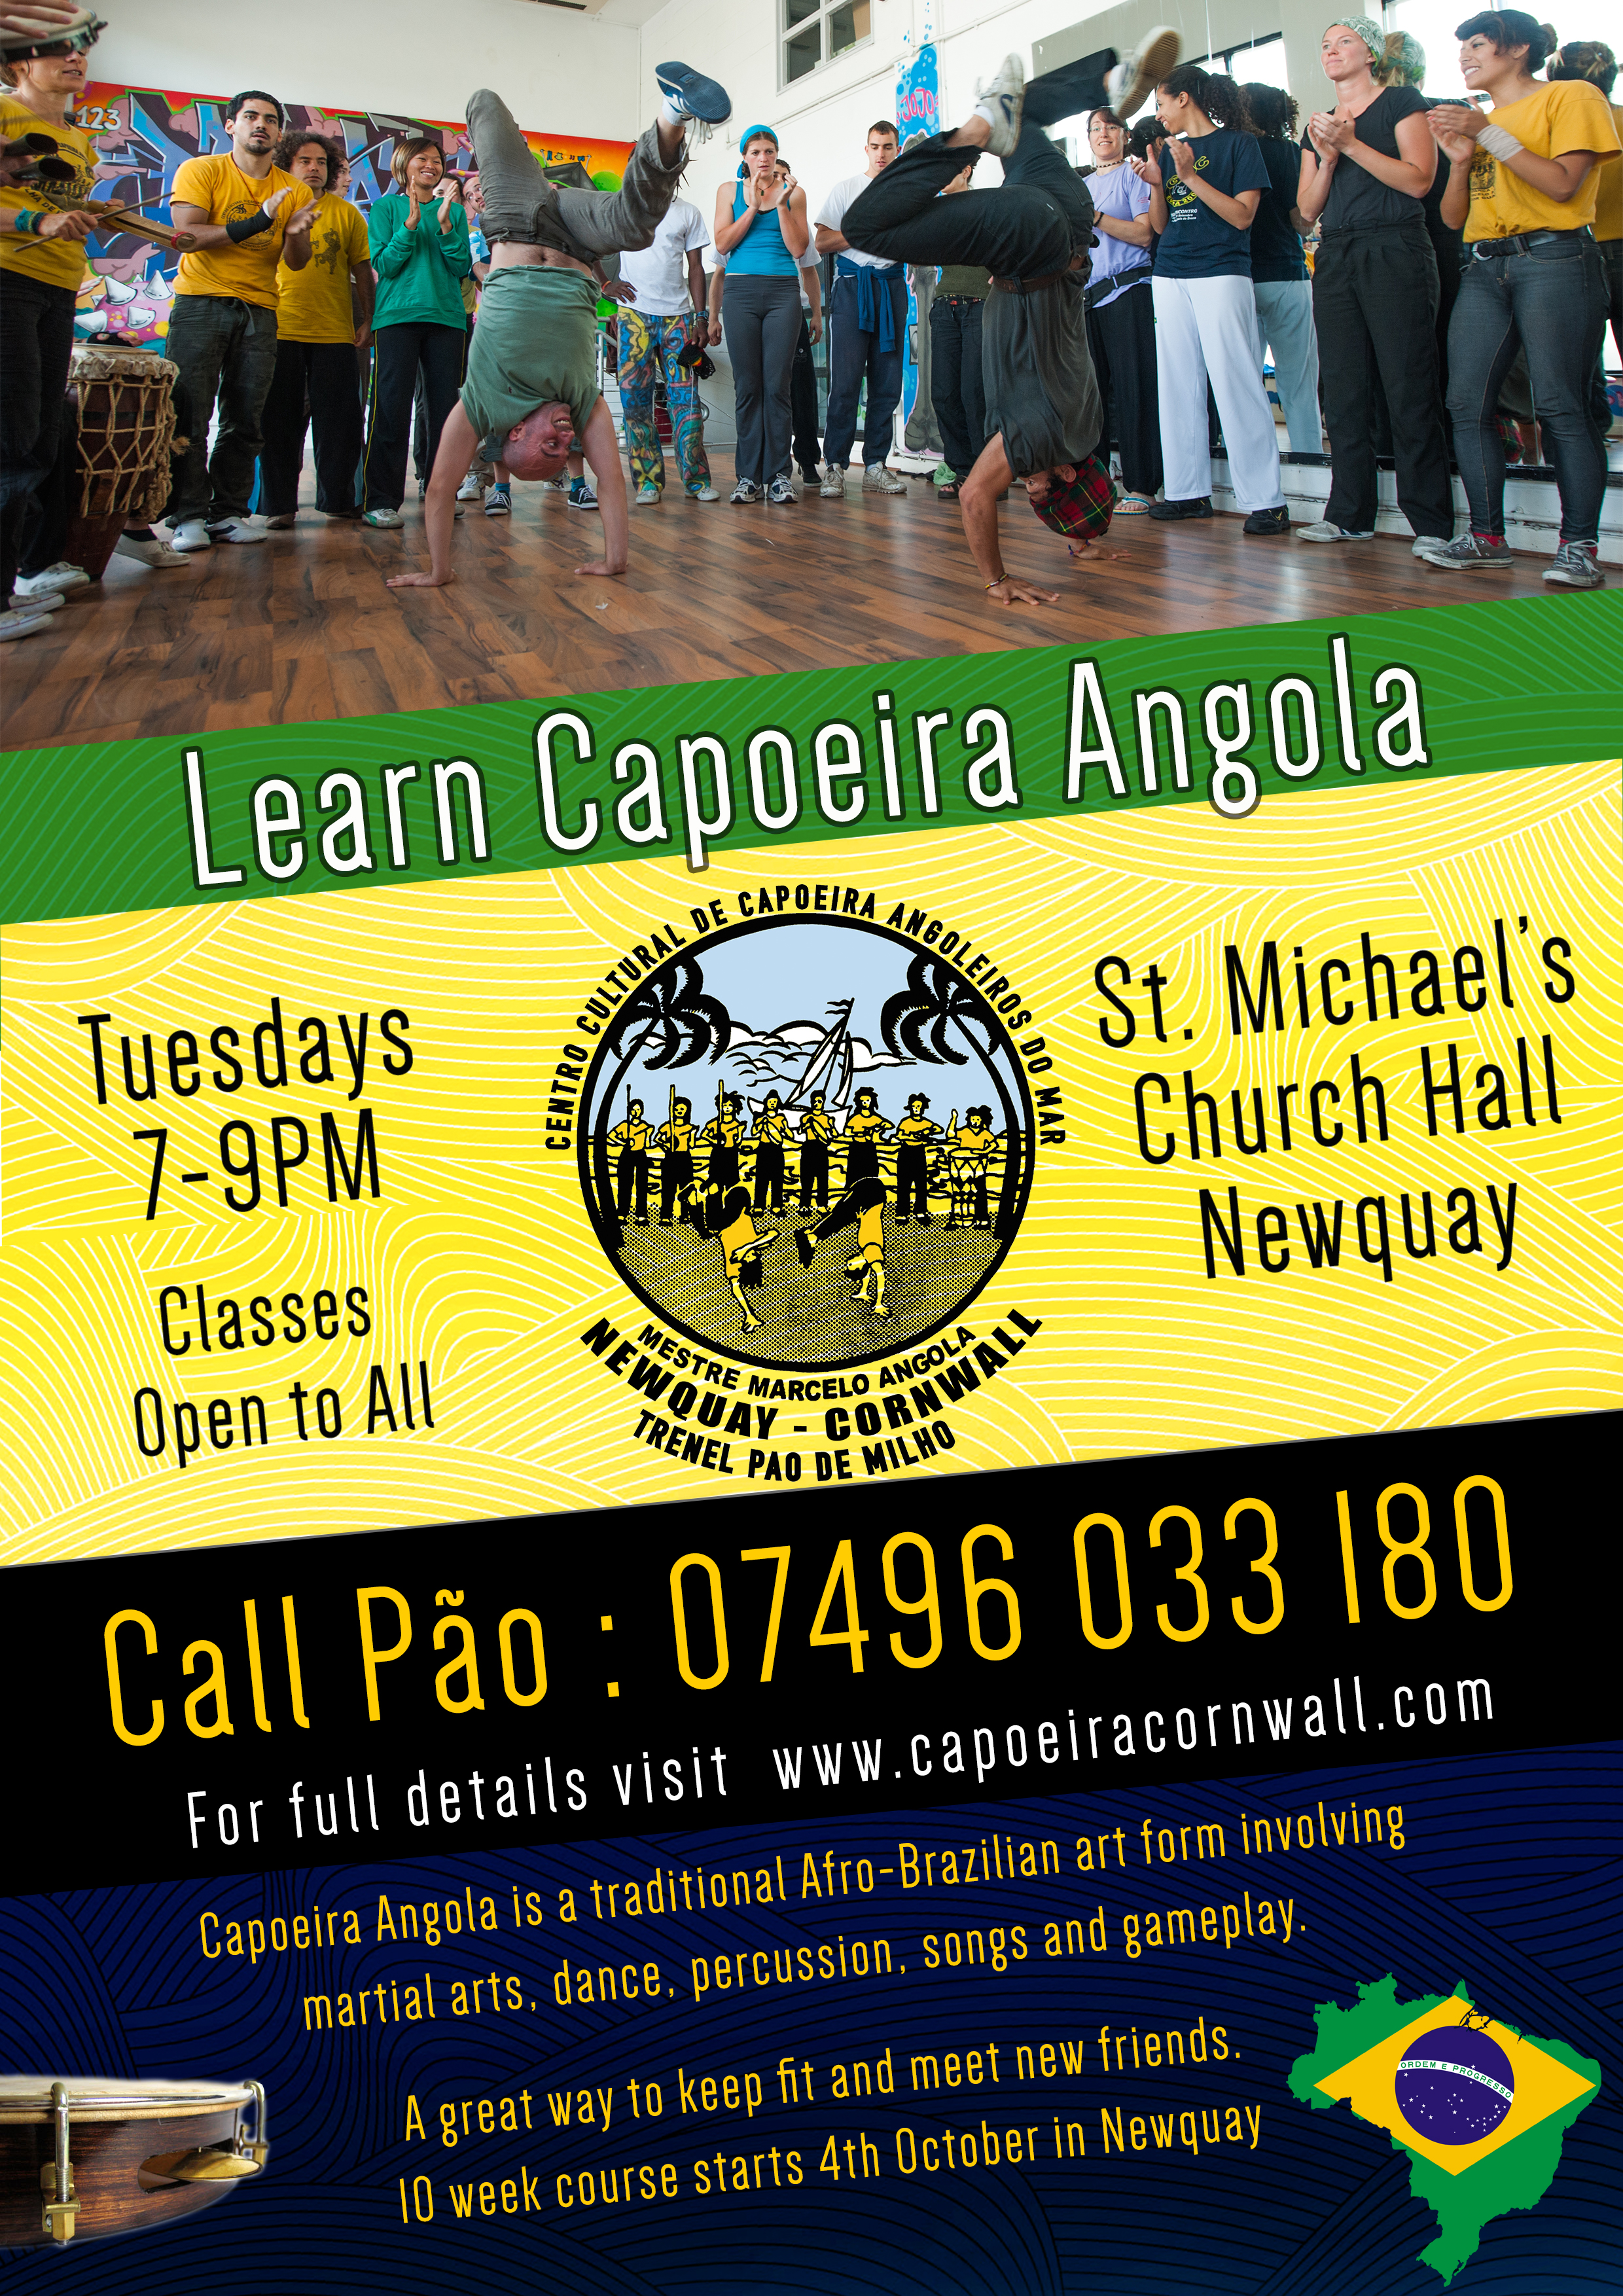 10 week Capoeira Course Newquay (Oct 2016)